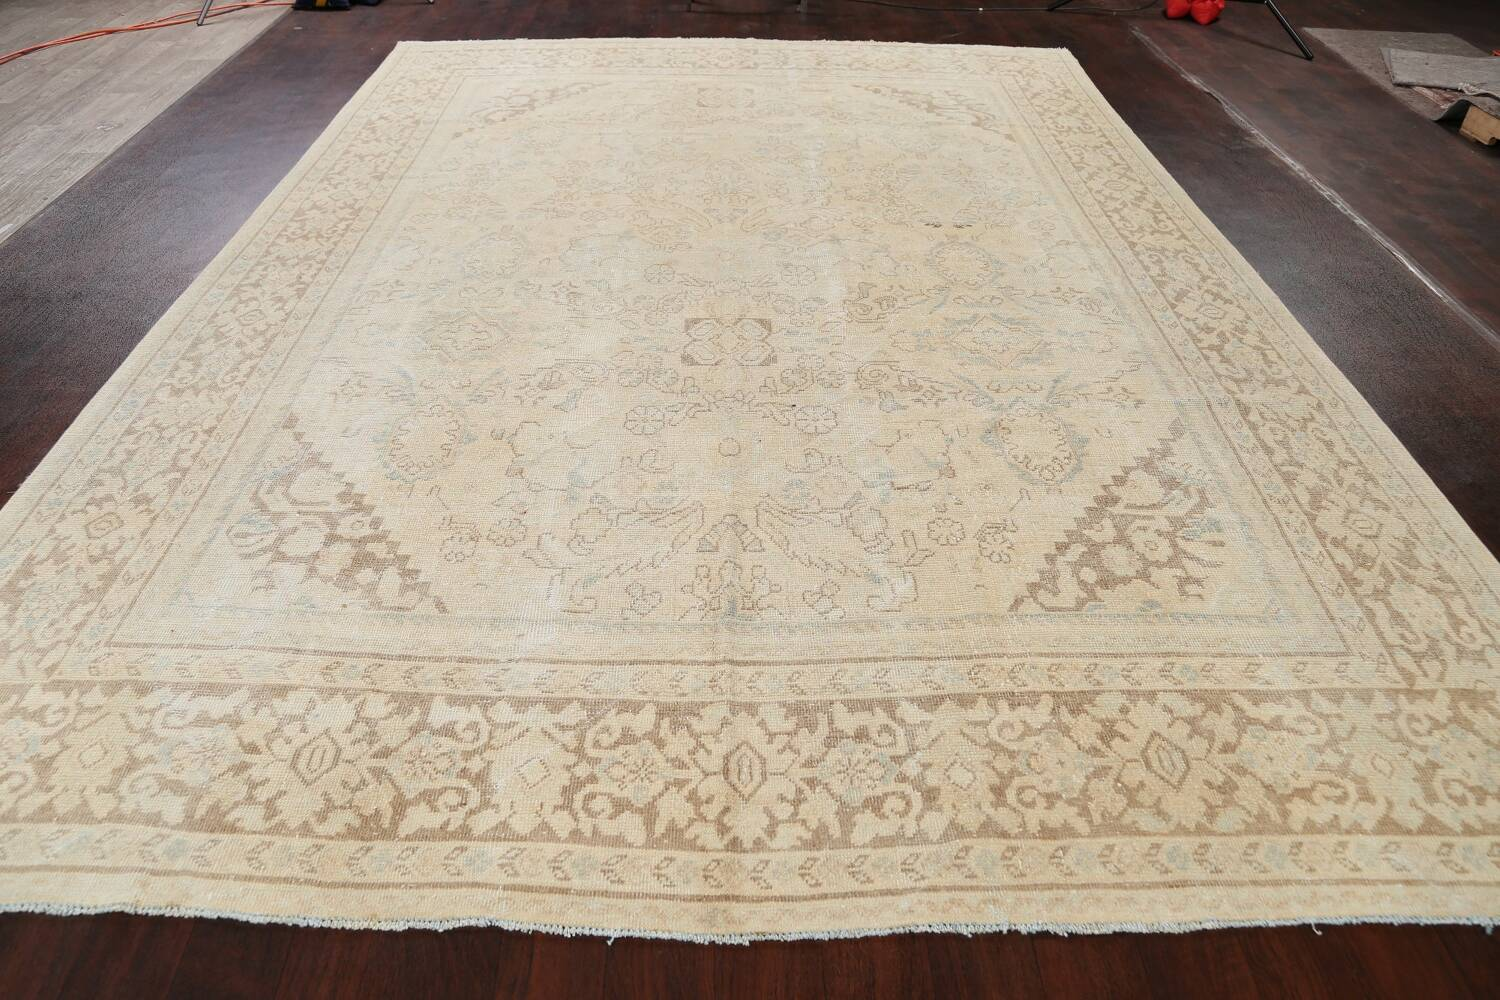 Antique Floral Mahal Persian Area Rug 9x12 image 15